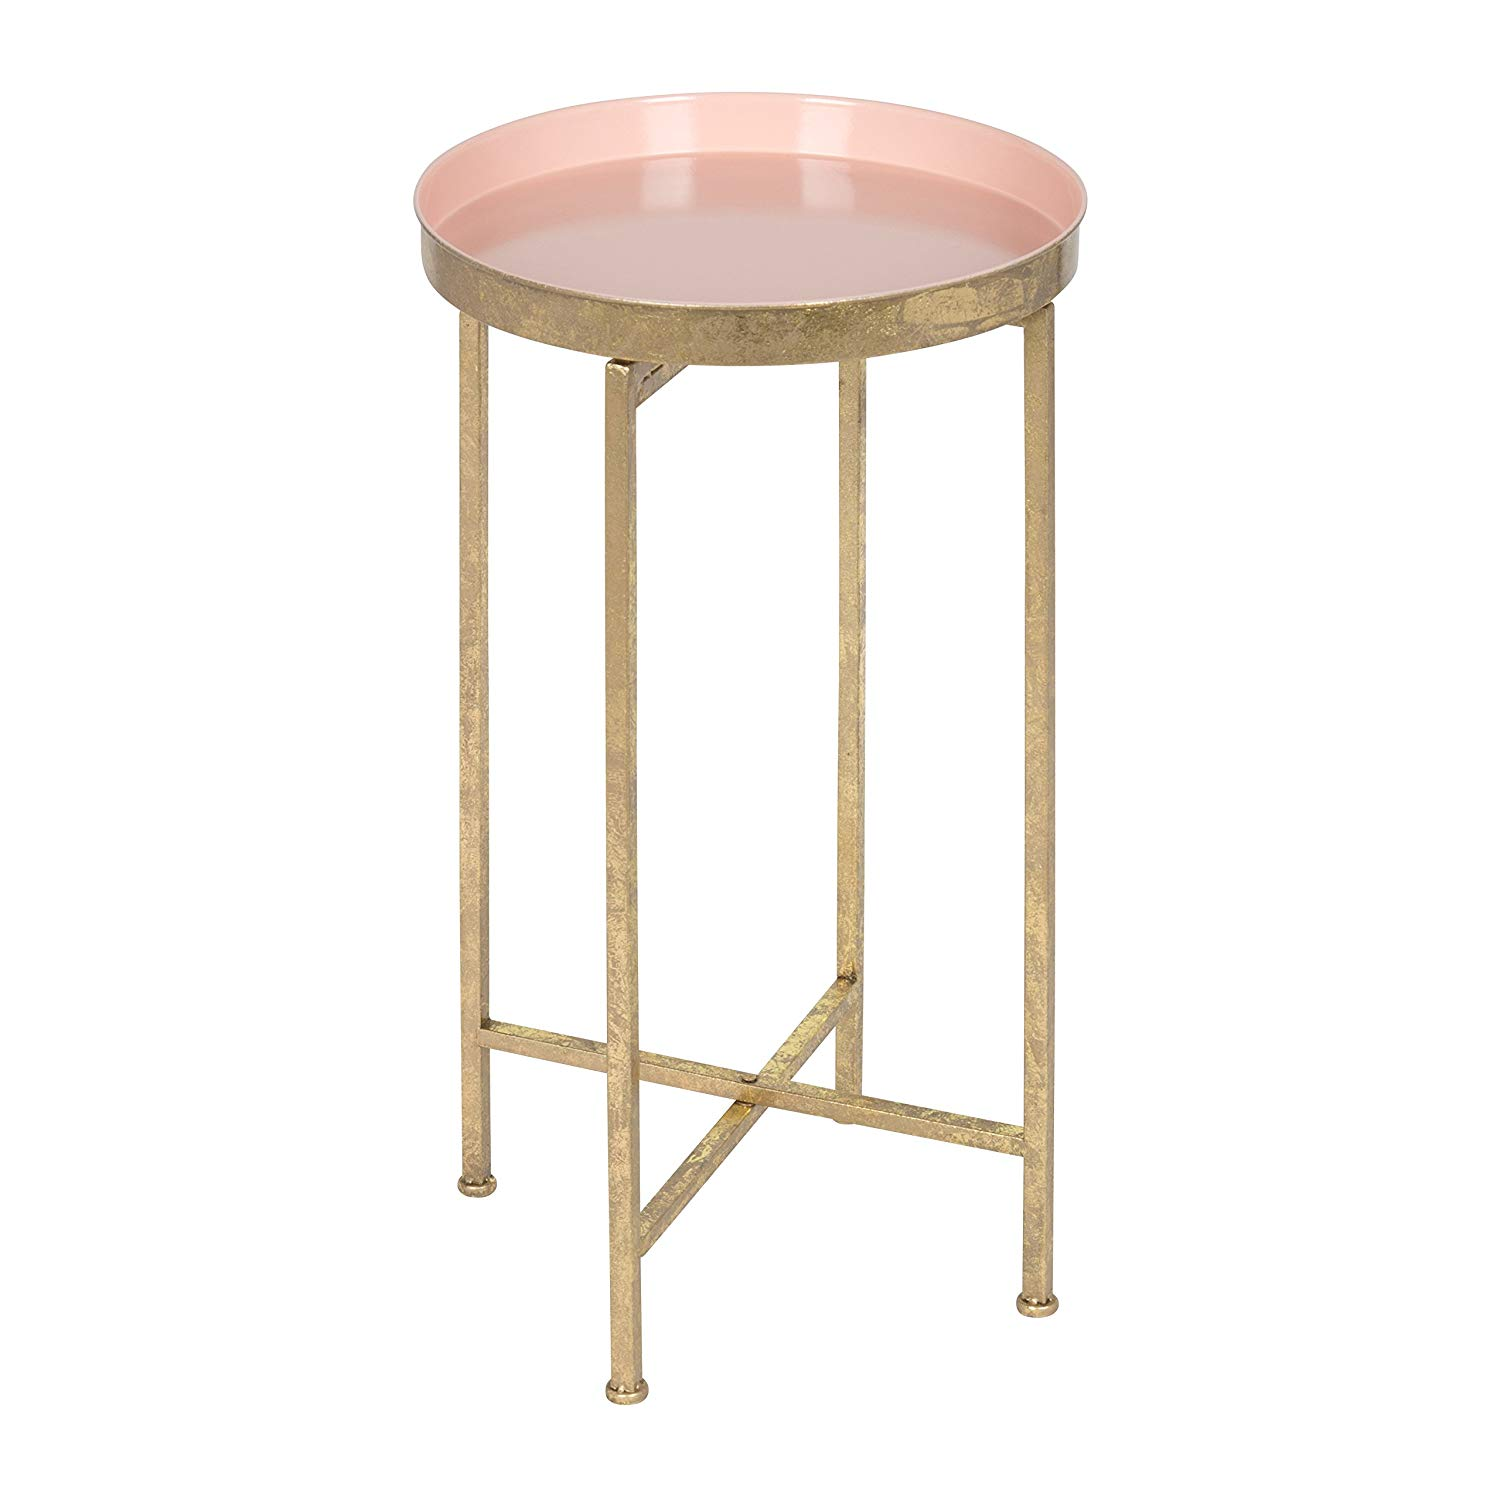 kate and laurel celia round metal foldable tray gold accent table pink home kitchen storage hanging wall clock lights runner rugs upholstered dining room chairs small entryway